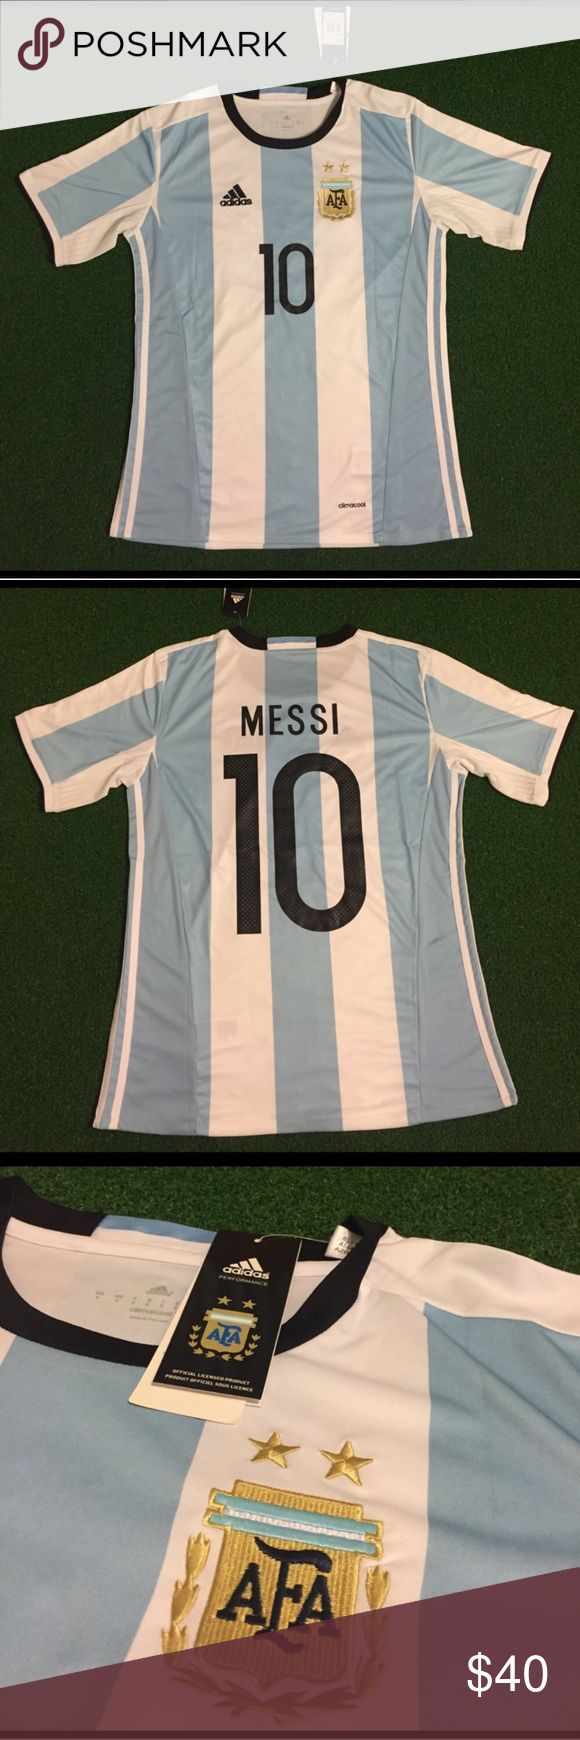 MESSI Argentina Soccer Jersey Short Sleeve Home I have men's adult sizes: small, medium, large, extra large (XL) ...Brand new with tags. Fast shipping. White and blue 2016 LIONEL MESSI #10 Argentina soccer jersey short sleeve. I have other jerseys available and socks and shorts as well, just ask! Tags: uniform, top, Futbol, kit, Fcb, football Shirts Tees - Short Sleeve